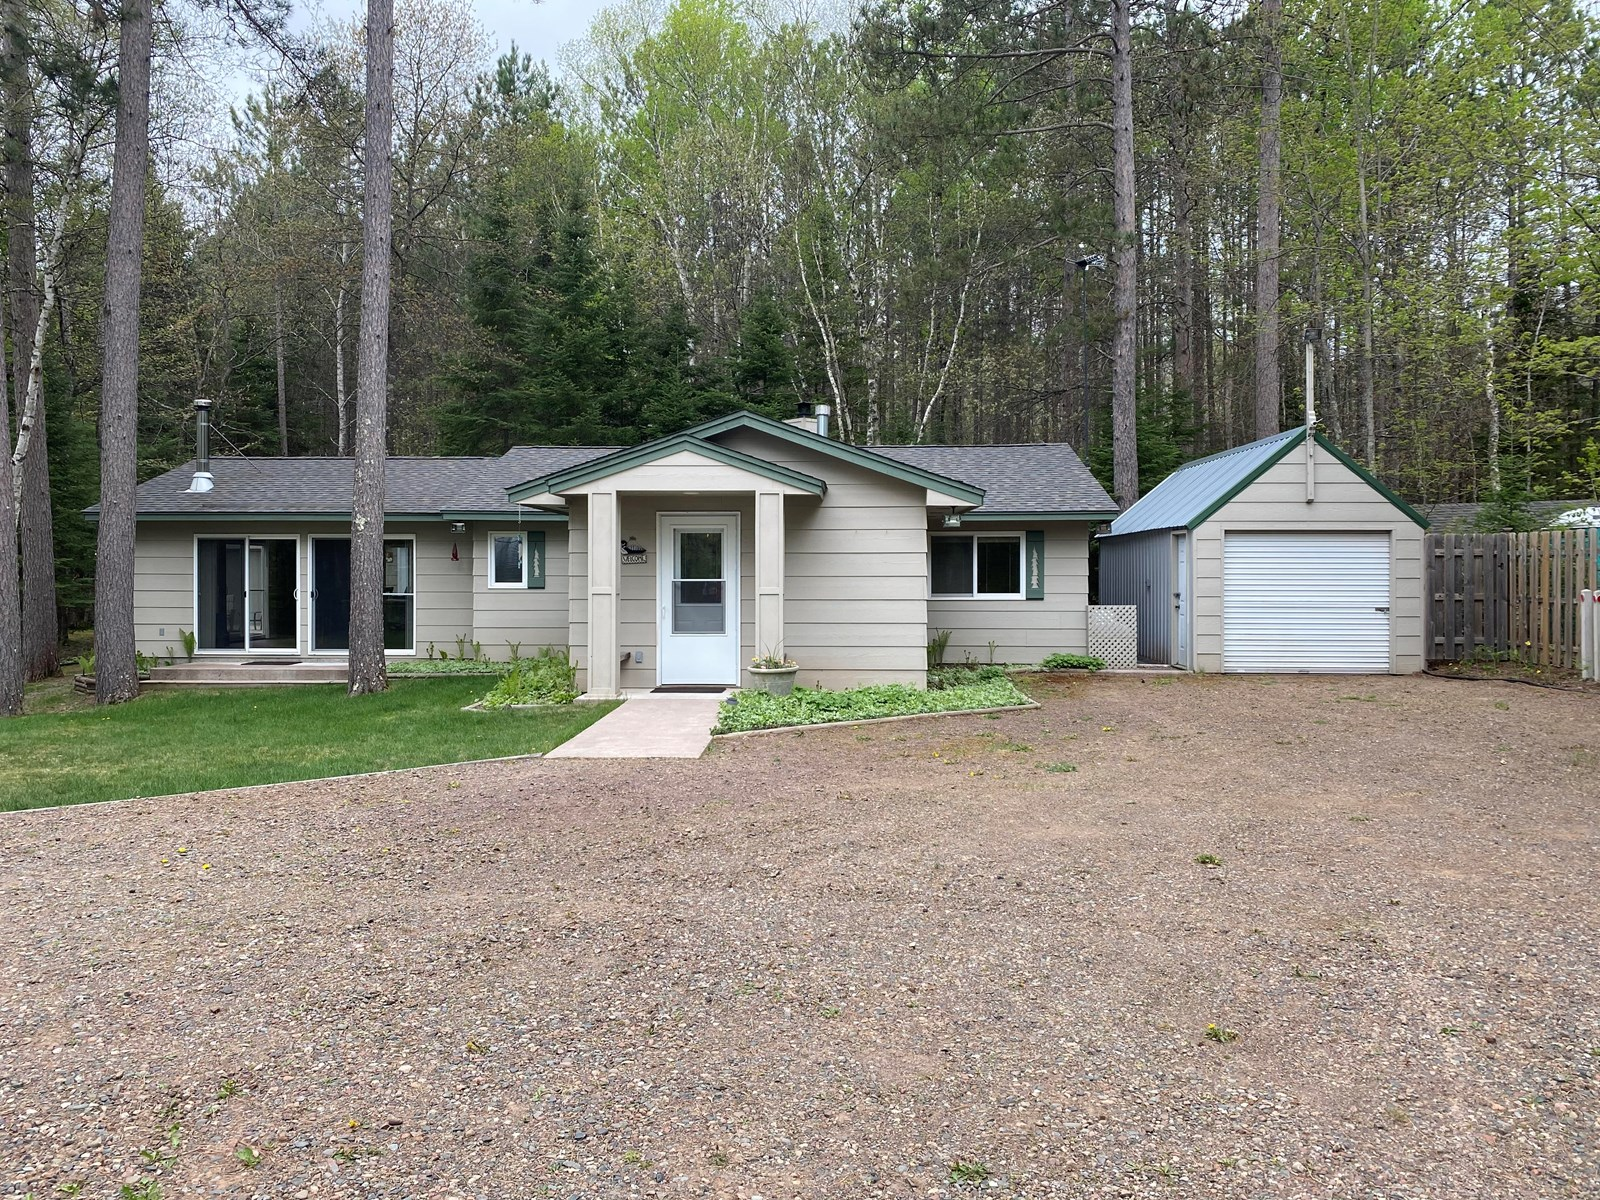 Country Home for Sale with Sturgeon Lake Deeded Access